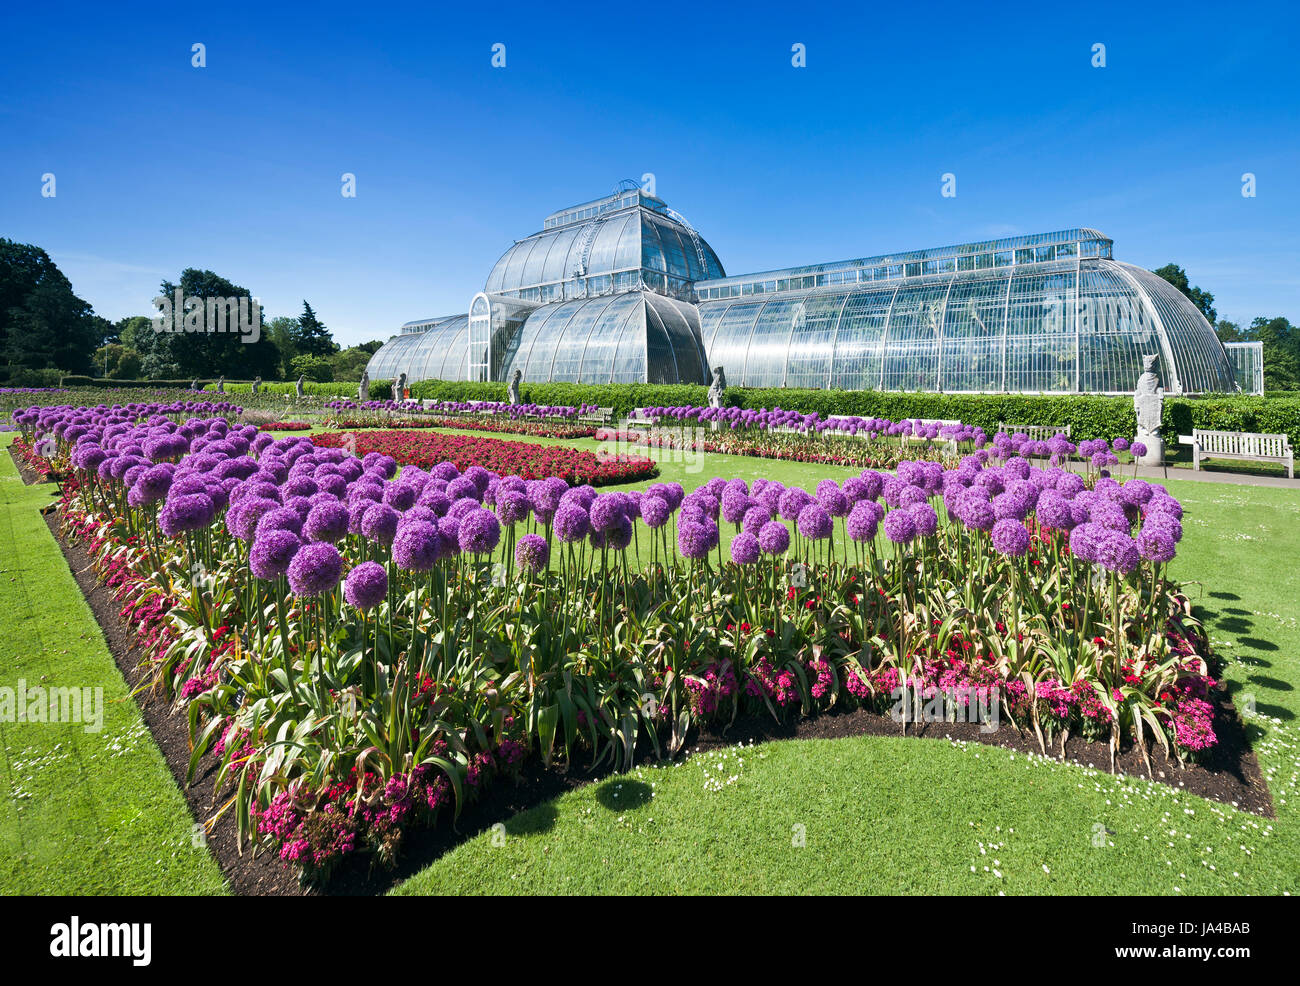 The Palm house, Kew Gardens. - Stock Image